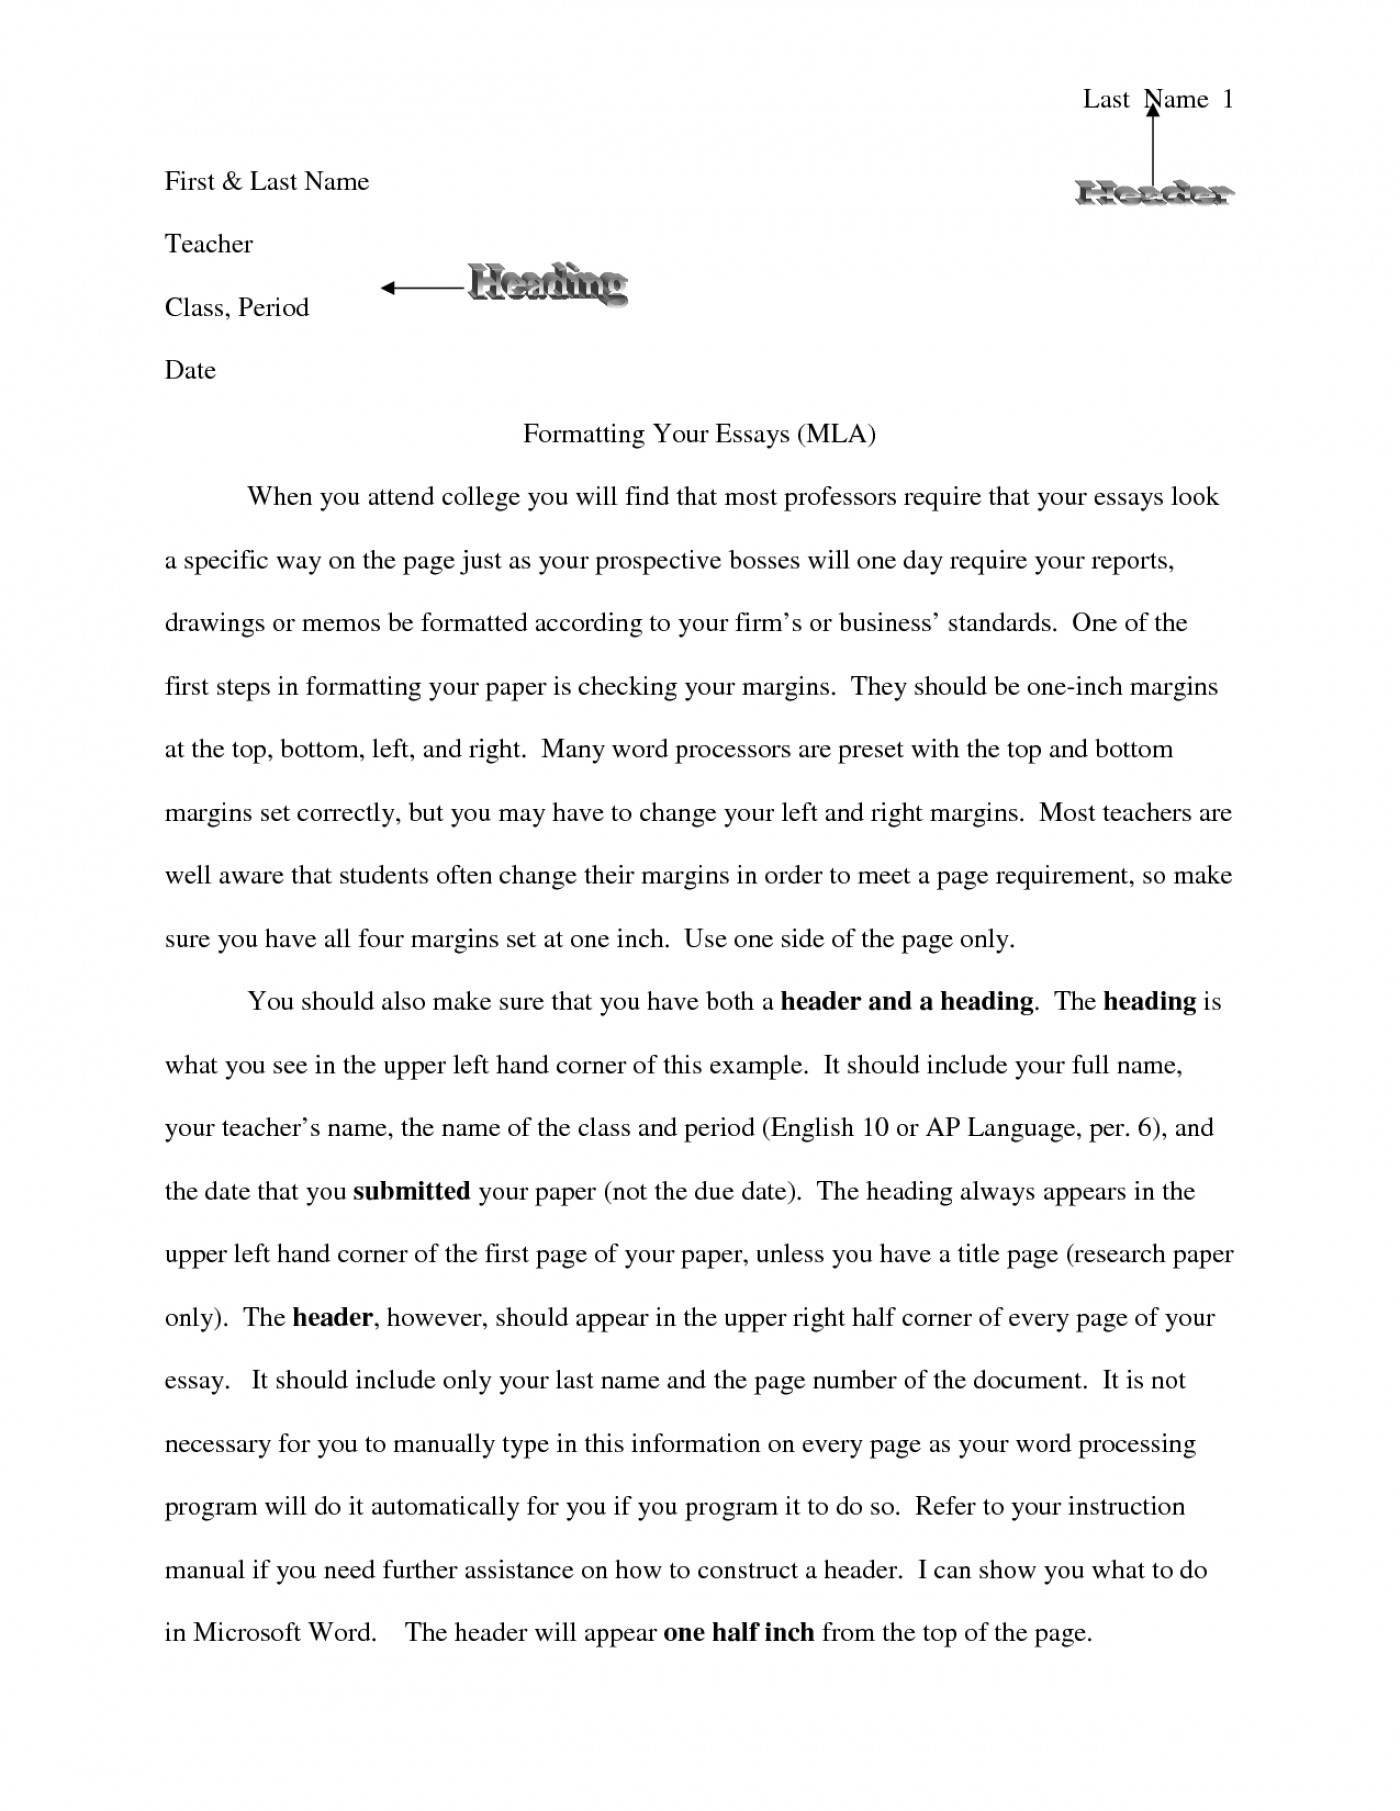 003 Nnftftofsn Essay Example College Incredible Heading Admissions Format Application Papers 1400